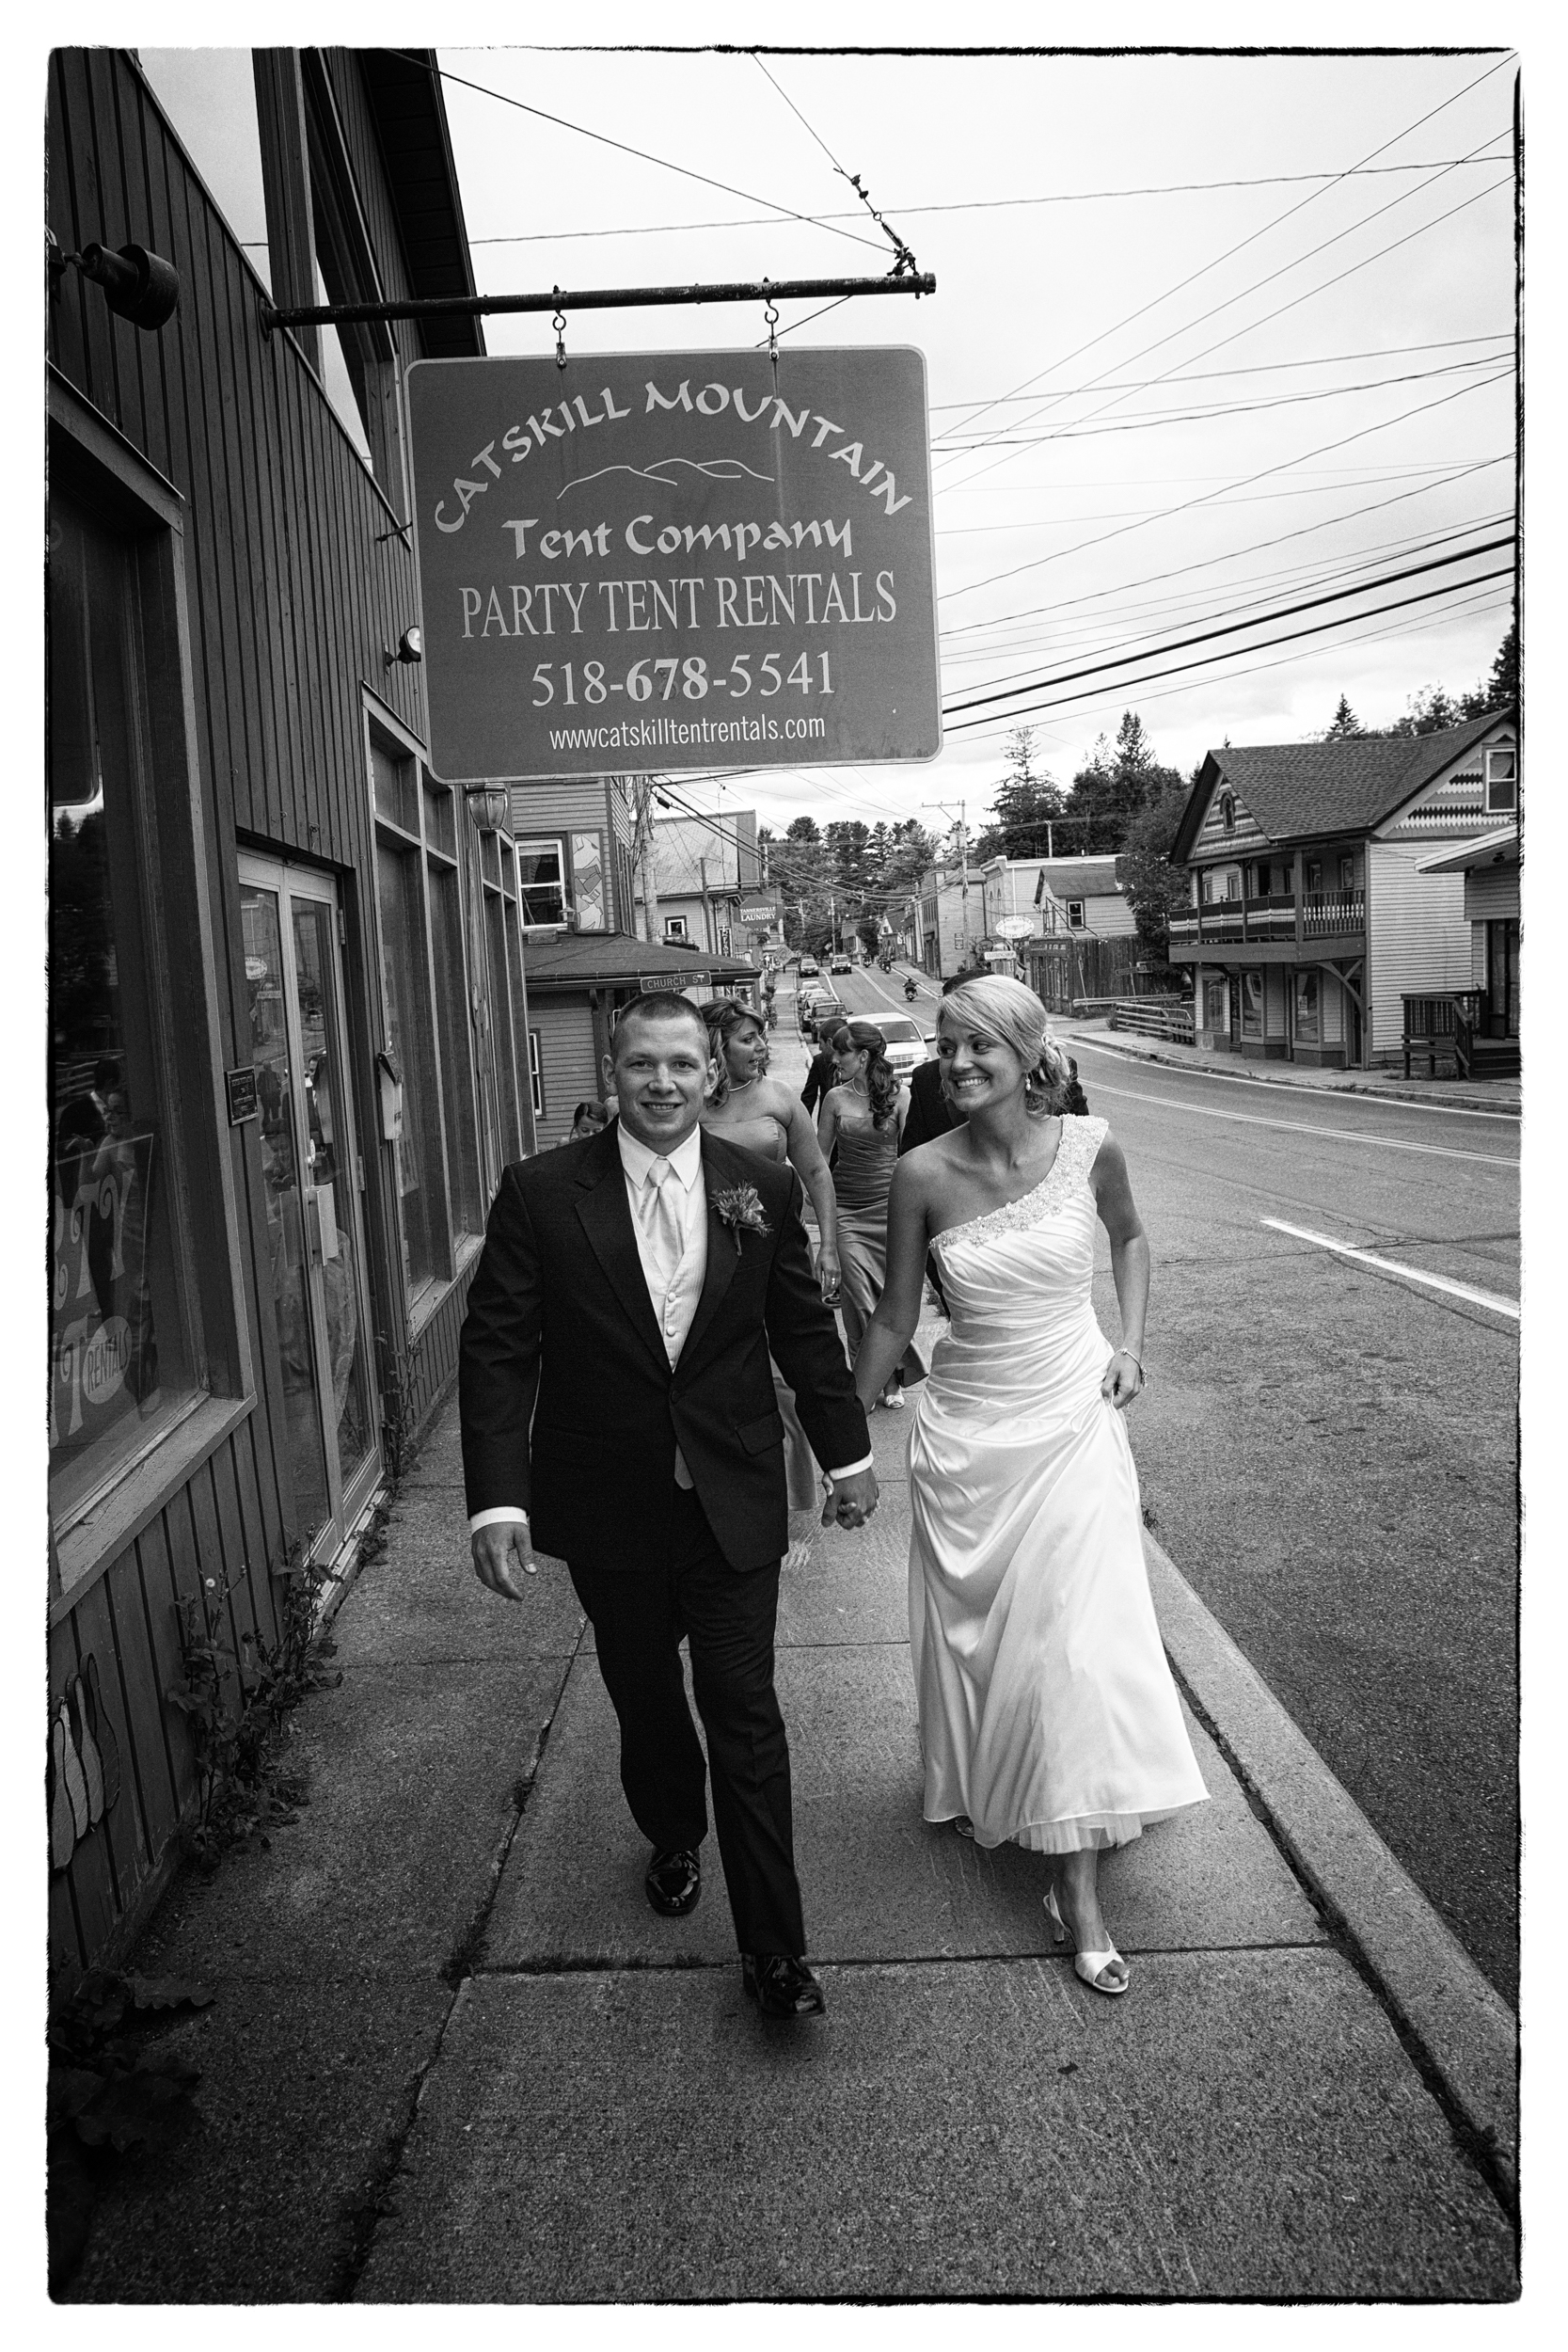 Bride and groom walking the streets of Hunter, NY